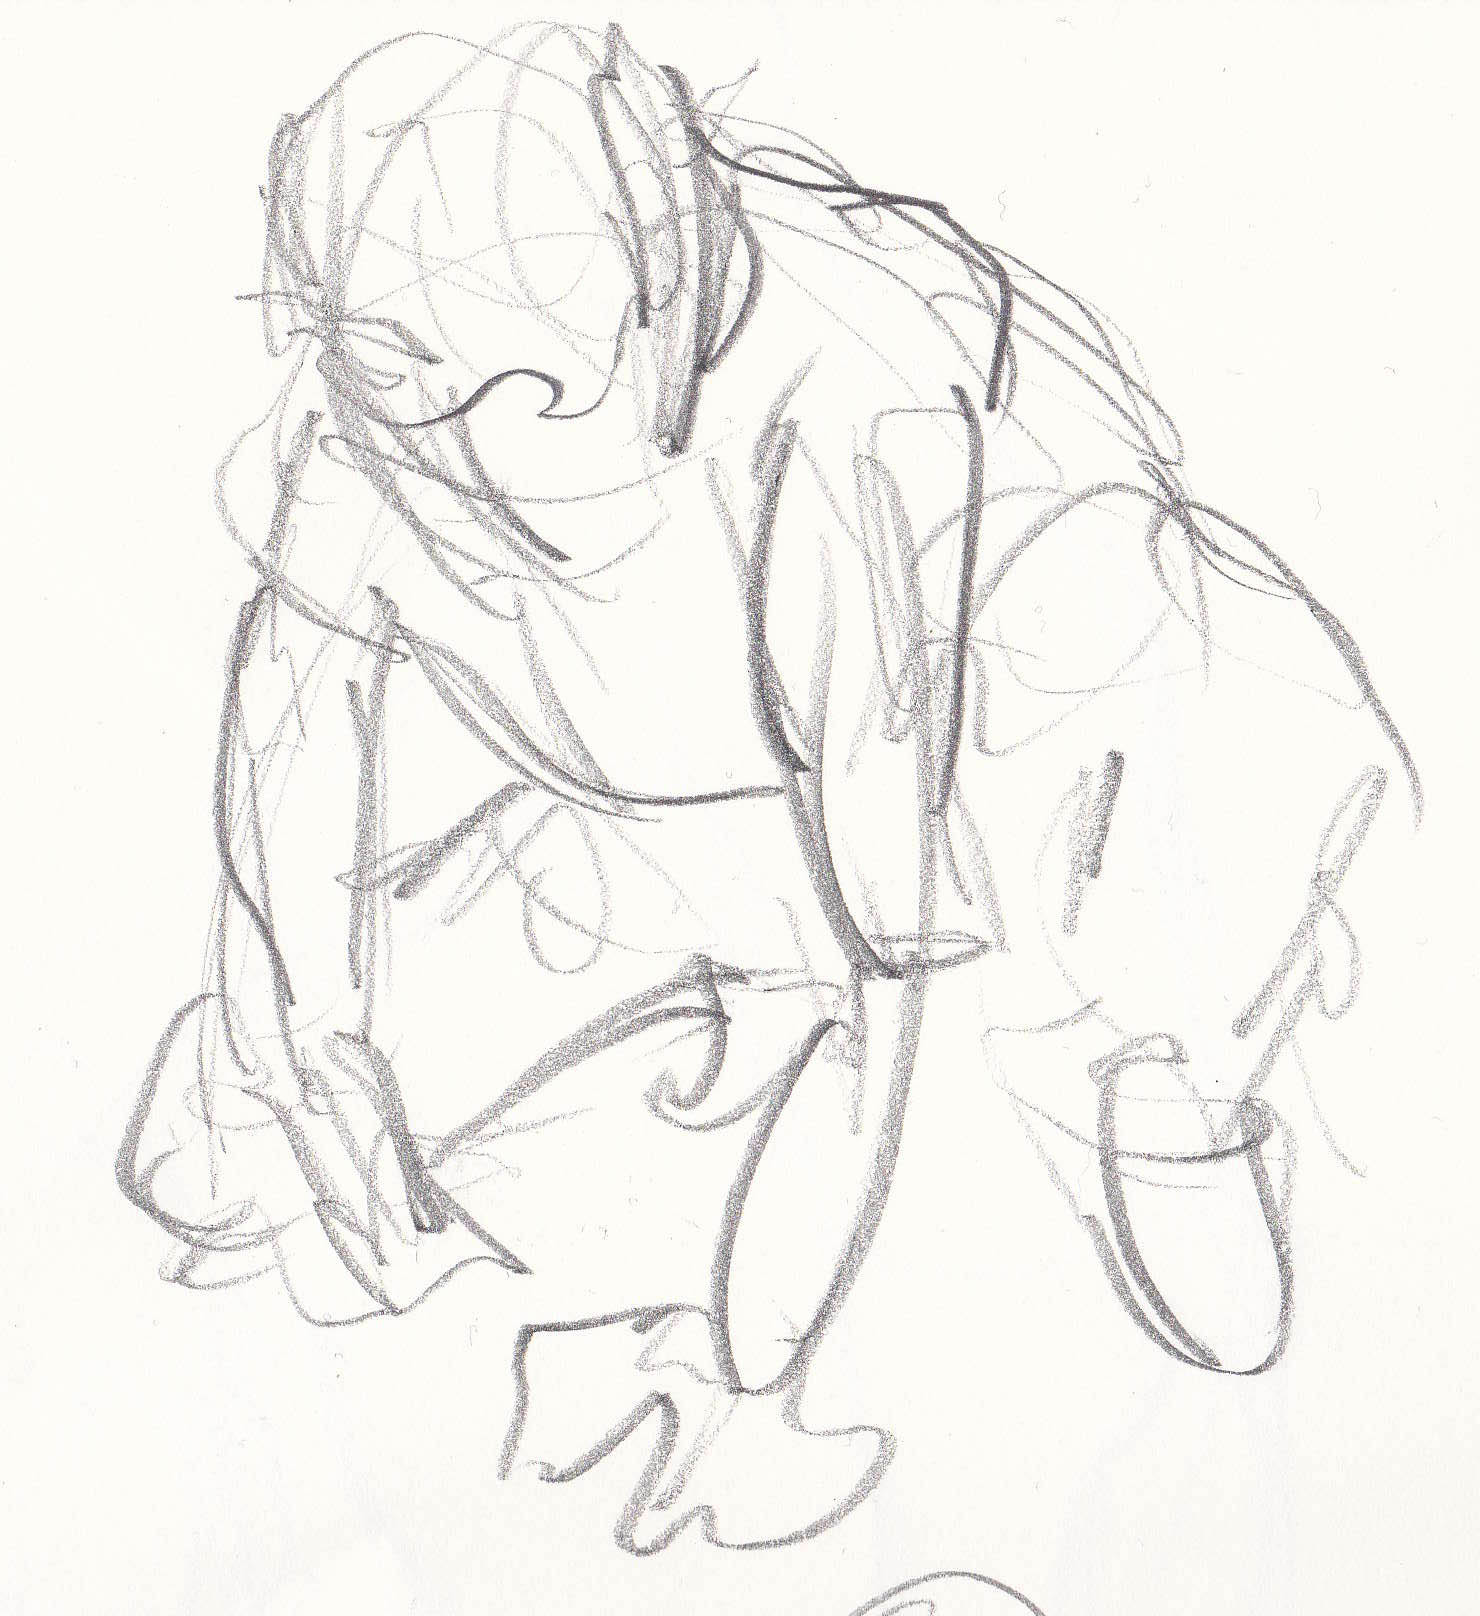 1480x1616 Life Drawing 230913 Andrewwhittle Ddd